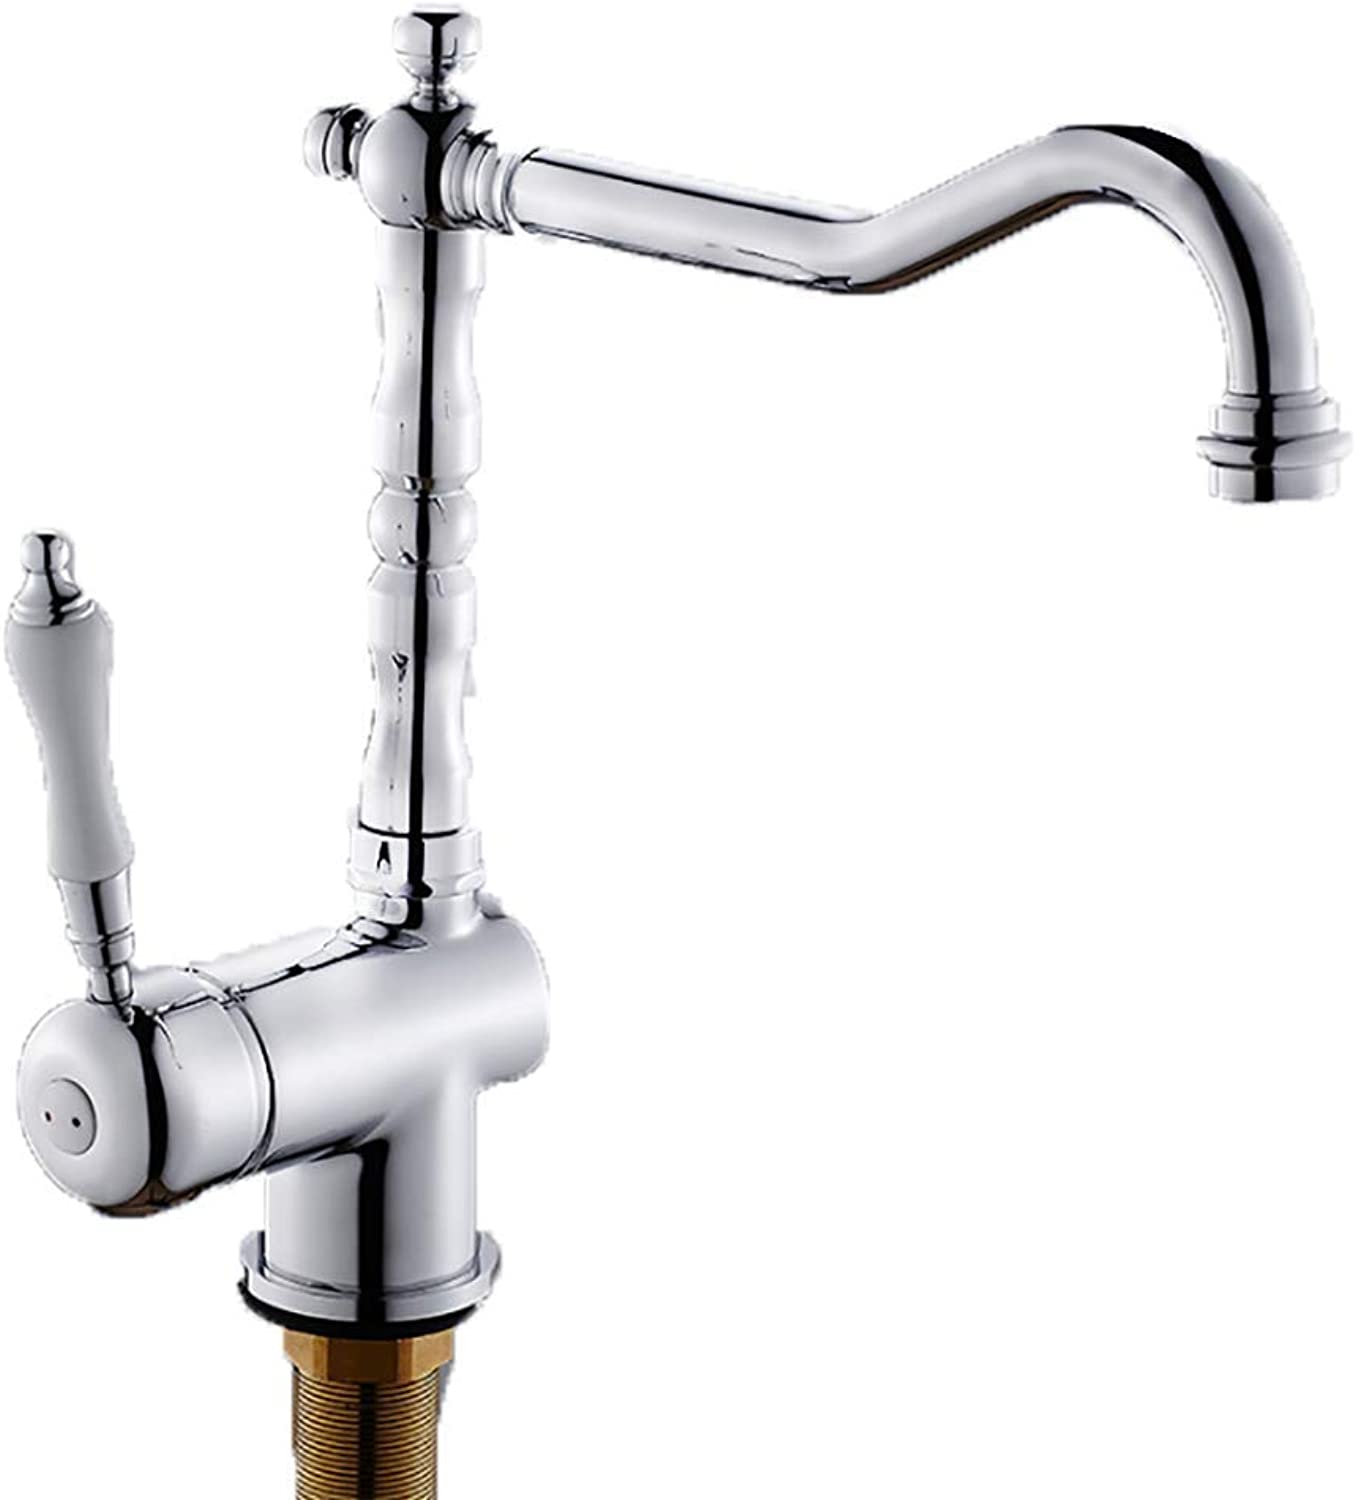 Coolol Kitchen Sink Faucet - Faucet redating Single Handle Deck Wall Mounted RV Kitchen Tap